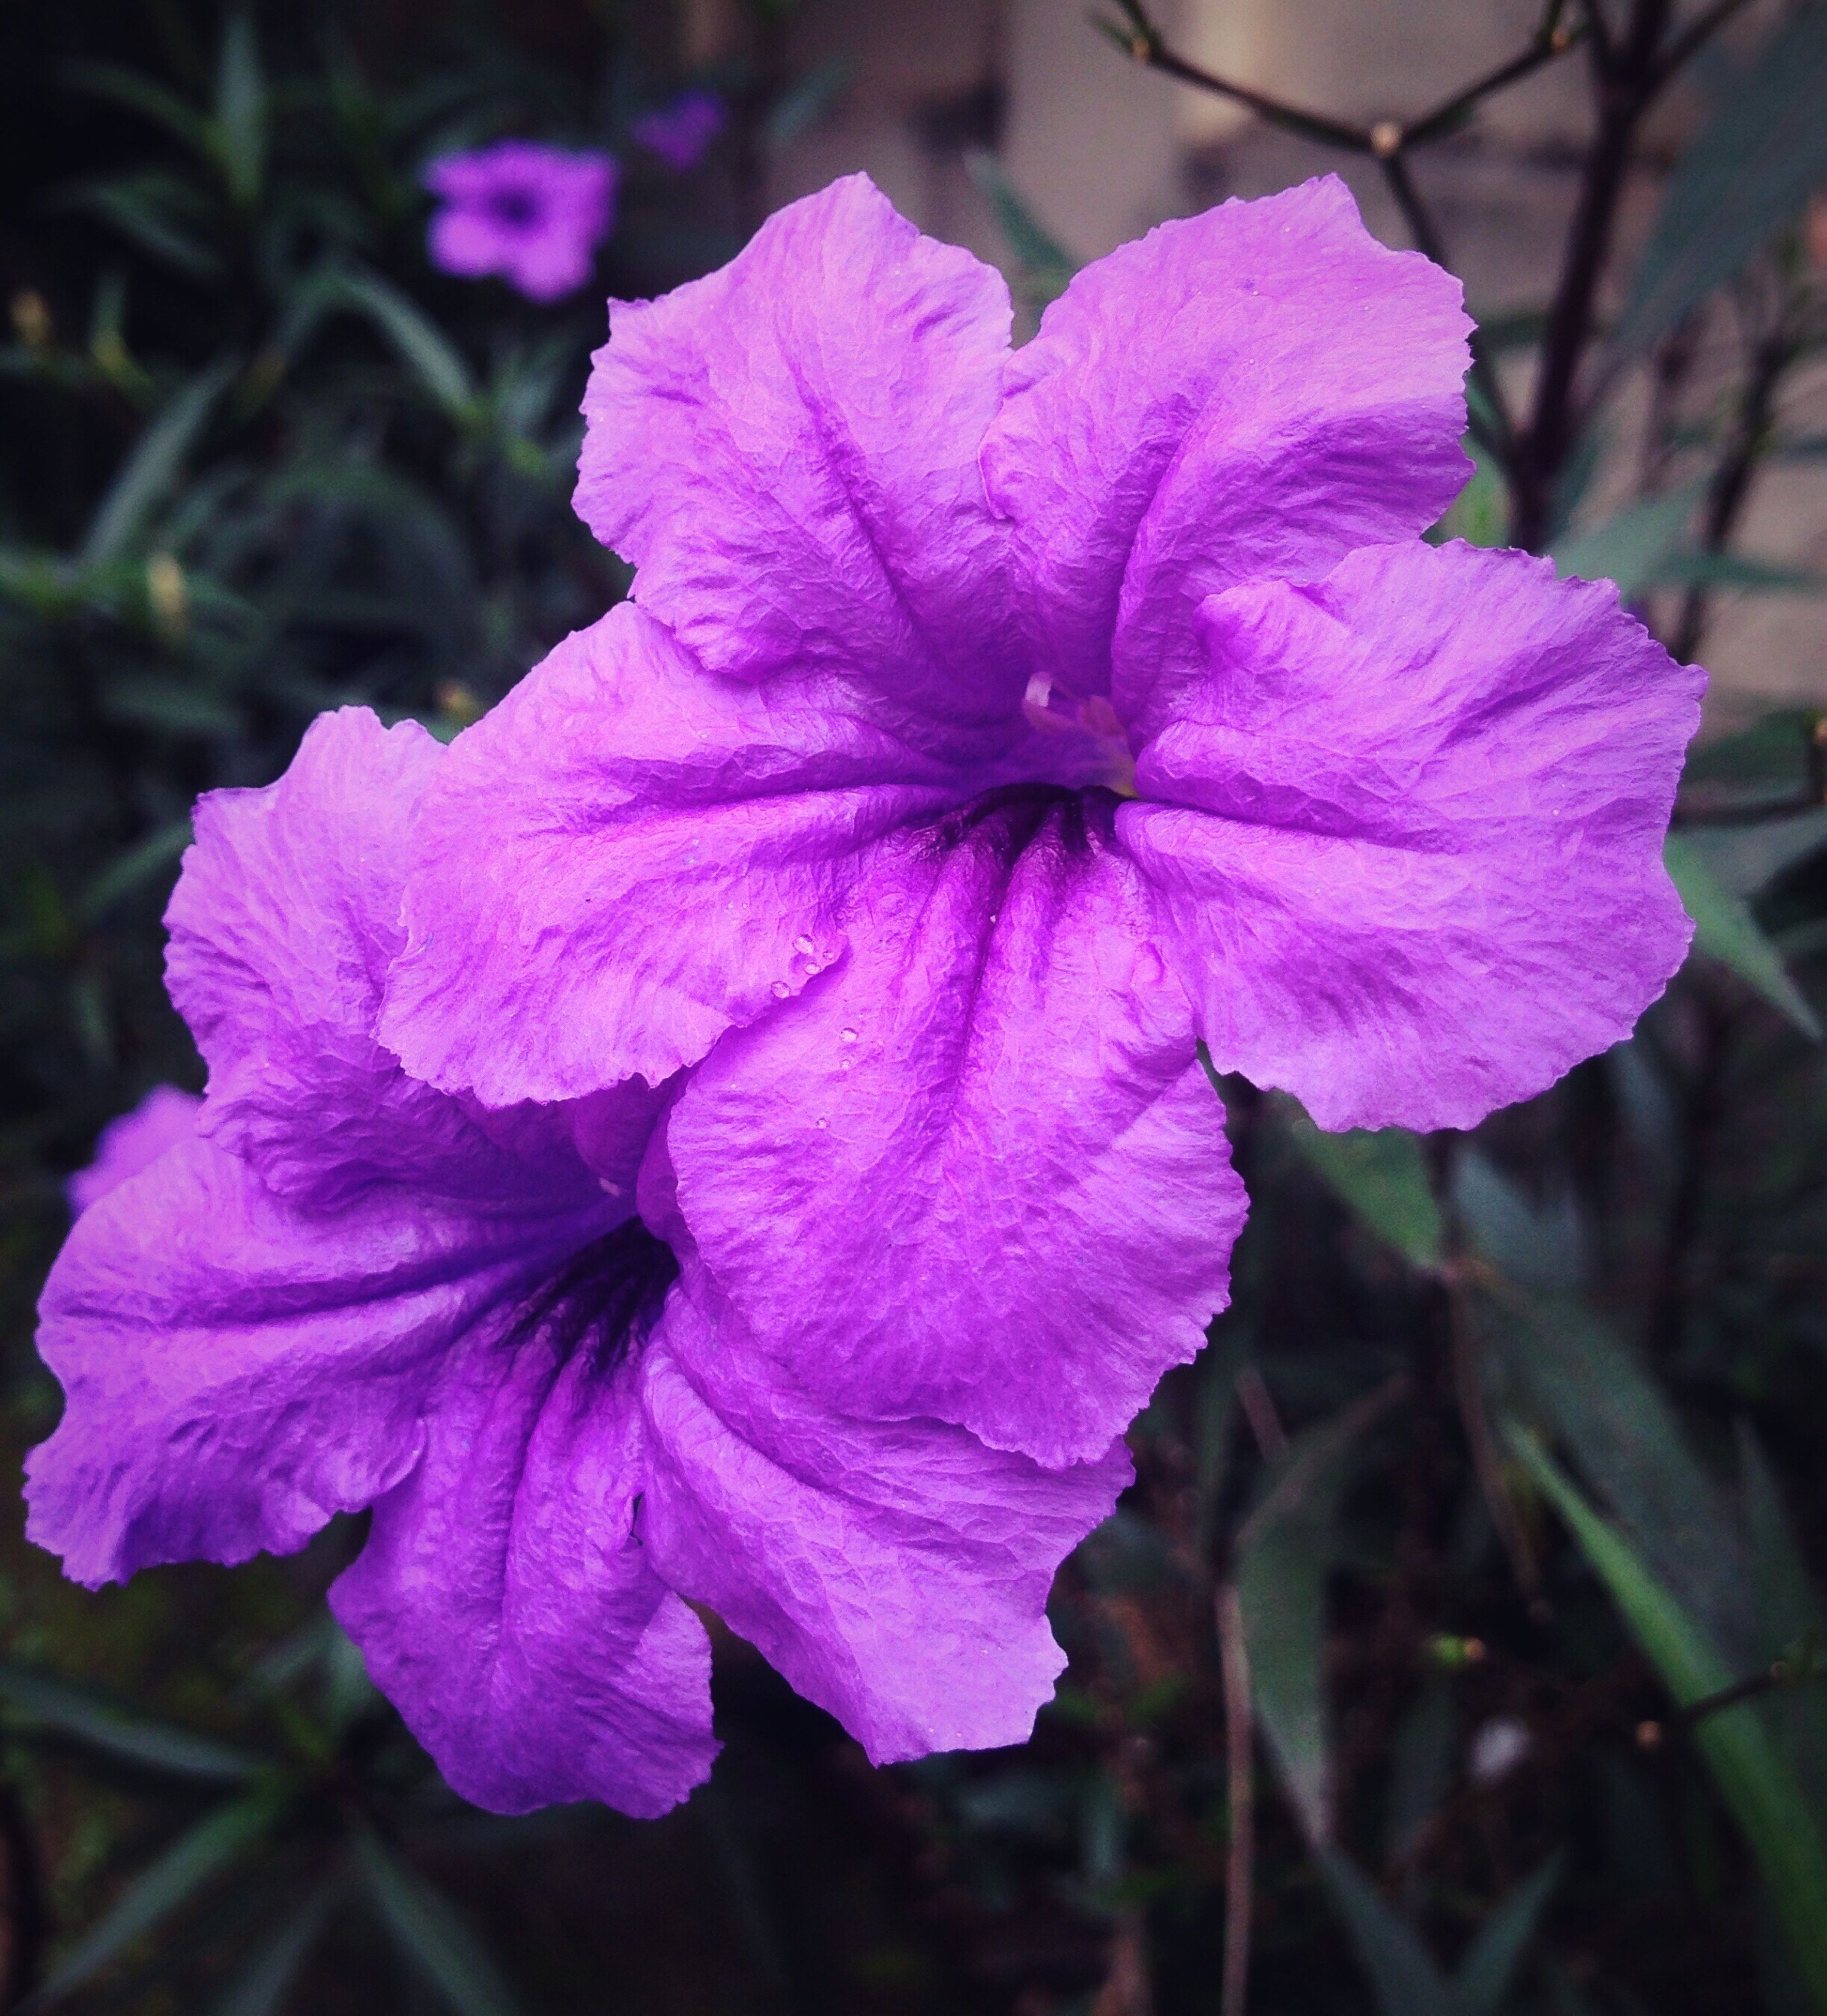 flower, petal, freshness, flower head, fragility, growth, close-up, beauty in nature, focus on foreground, blooming, nature, purple, plant, in bloom, pink color, day, outdoors, park - man made space, single flower, no people